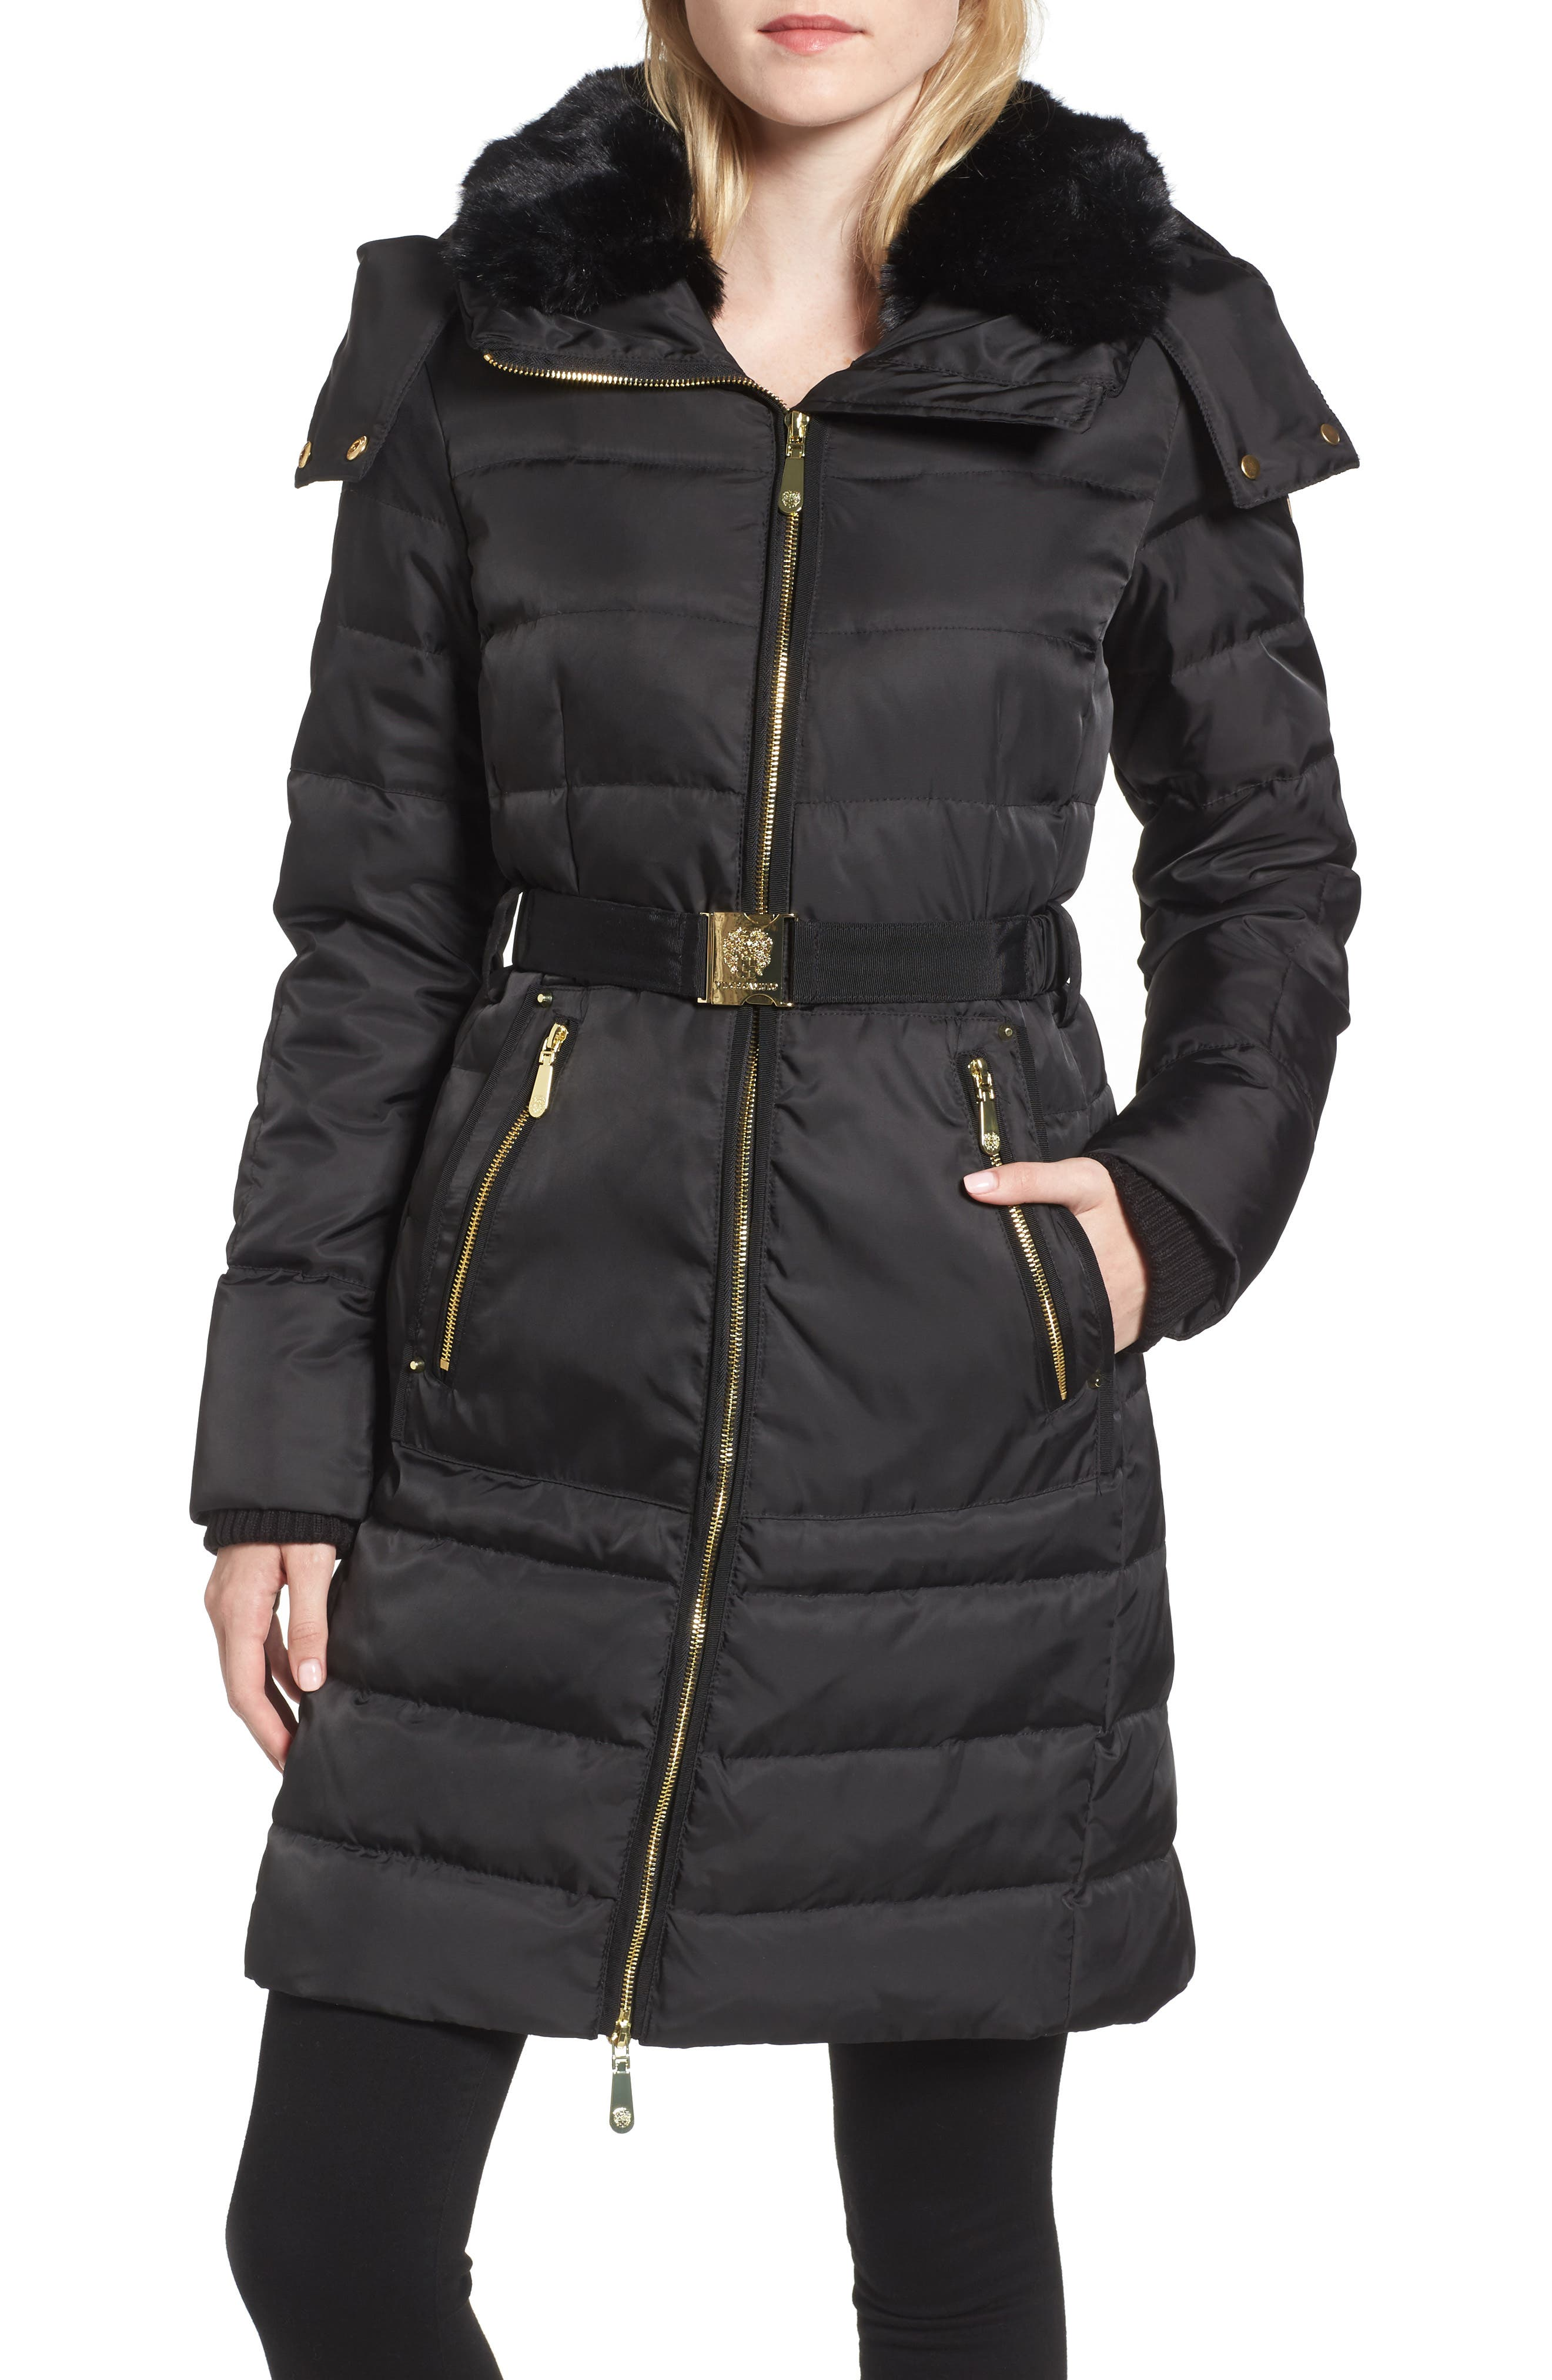 Alternate Image 1 Selected - Vince Camuto Belted Coat with Detachable Faux Fur